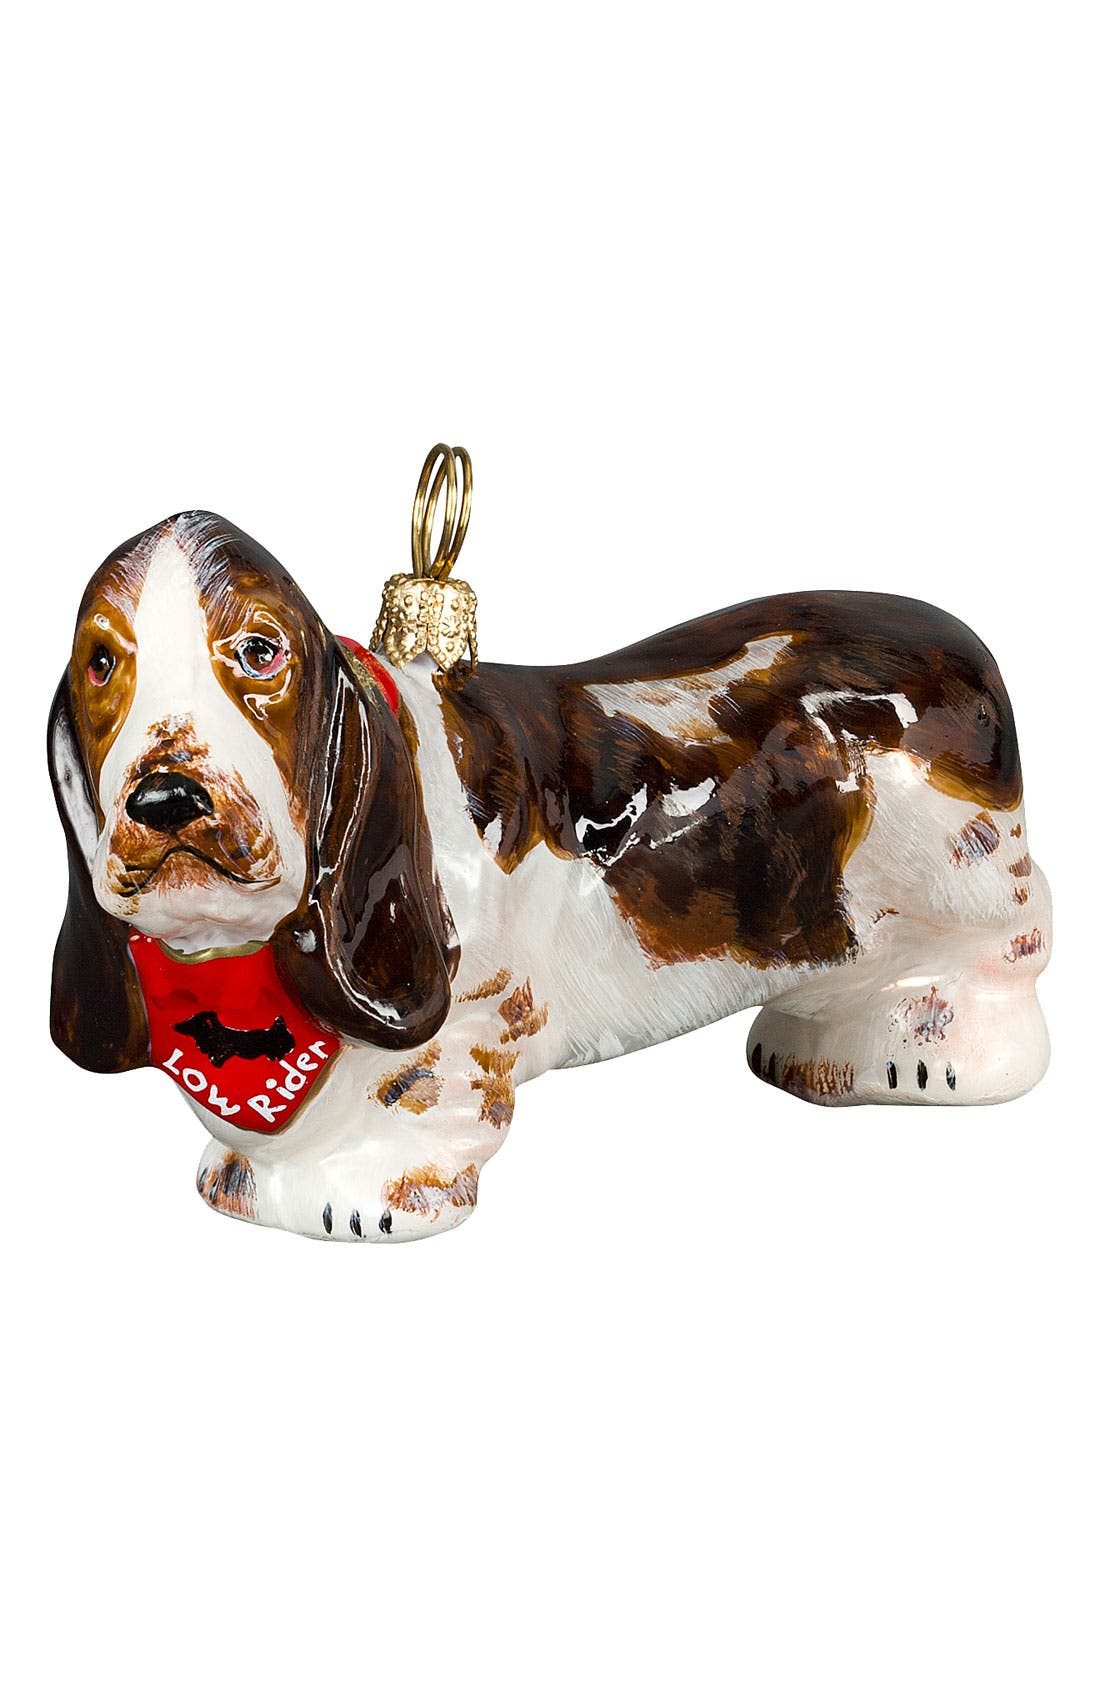 'Basset Hound Low Rider' Ornament,                             Main thumbnail 1, color,                             NO COLOR